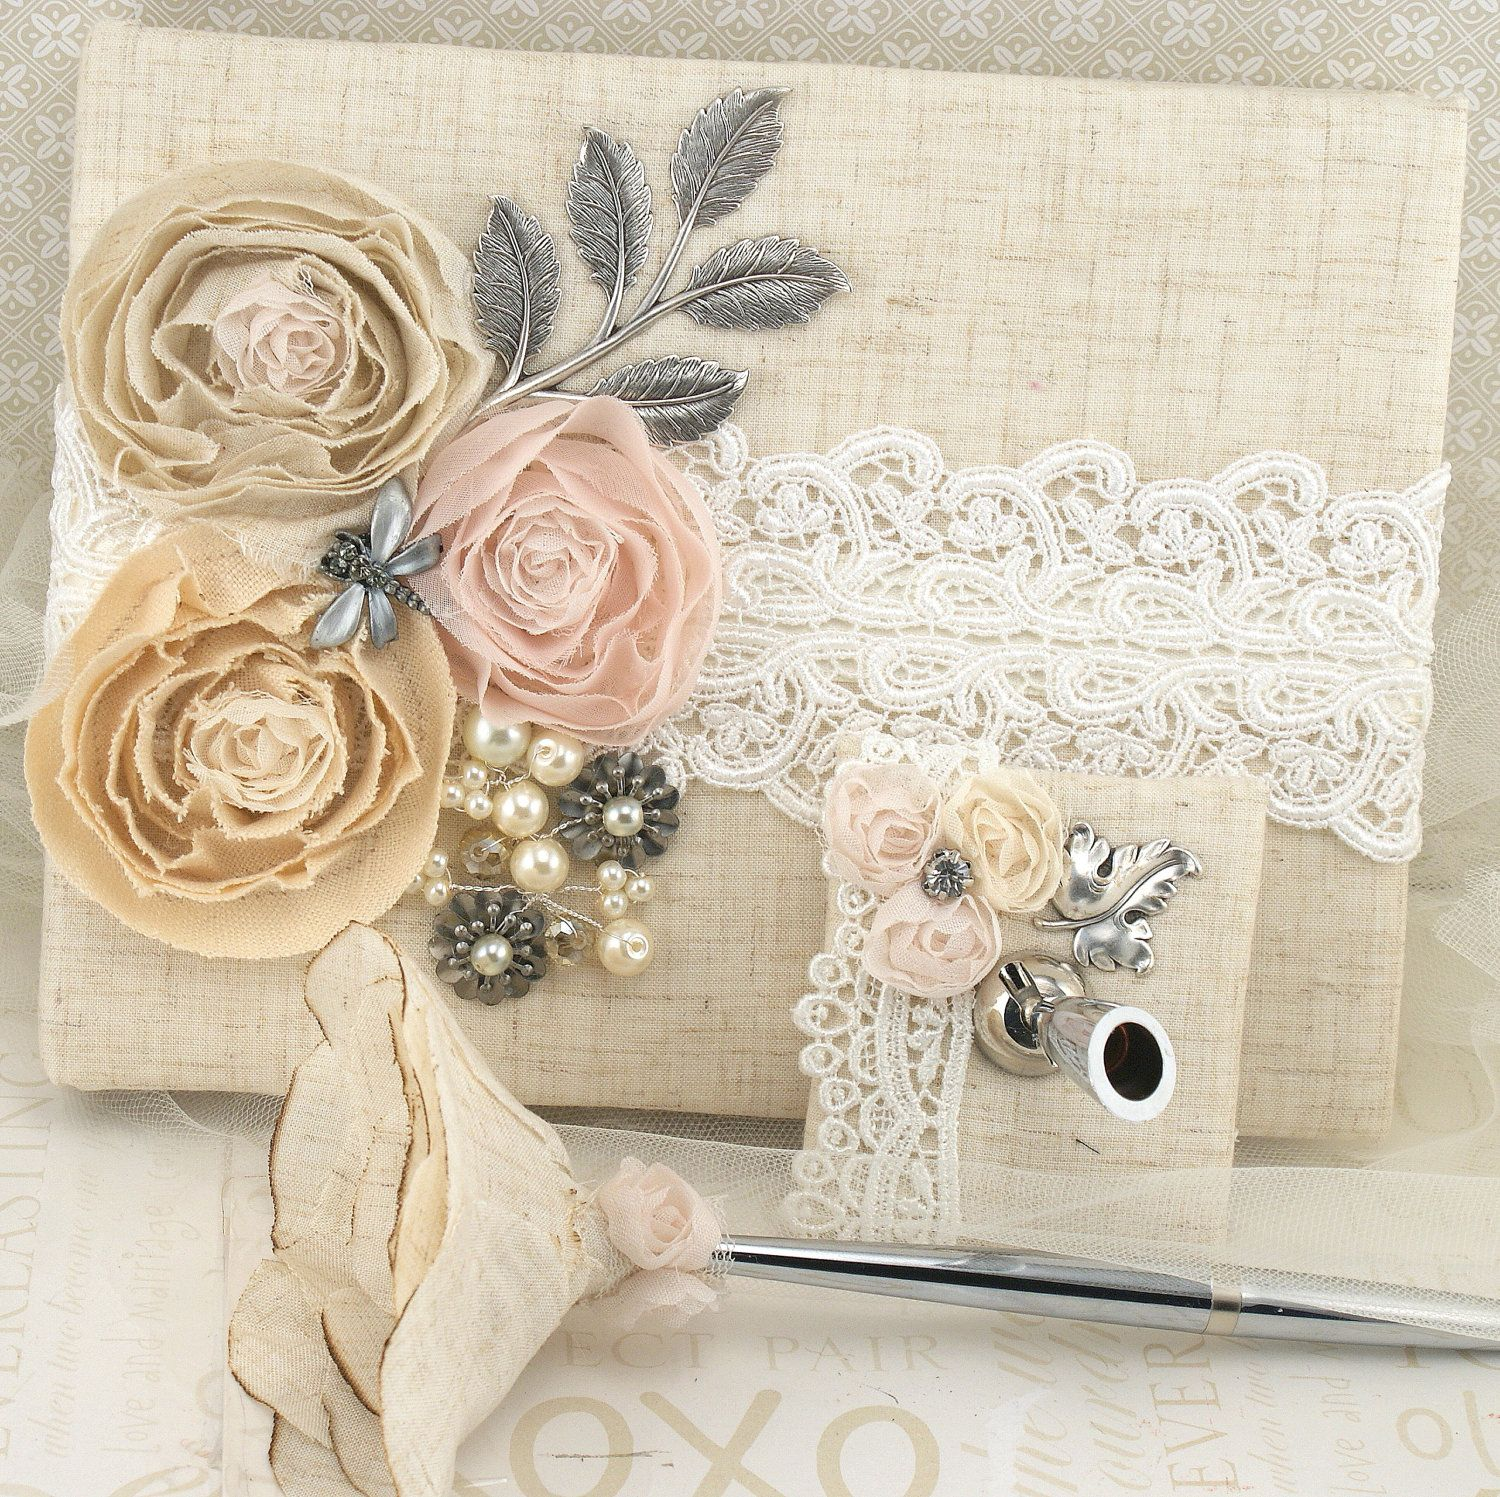 Wedding Guest Book And Pen Set Shabby Chic Vintage Inspired In Blush Pink Ivory